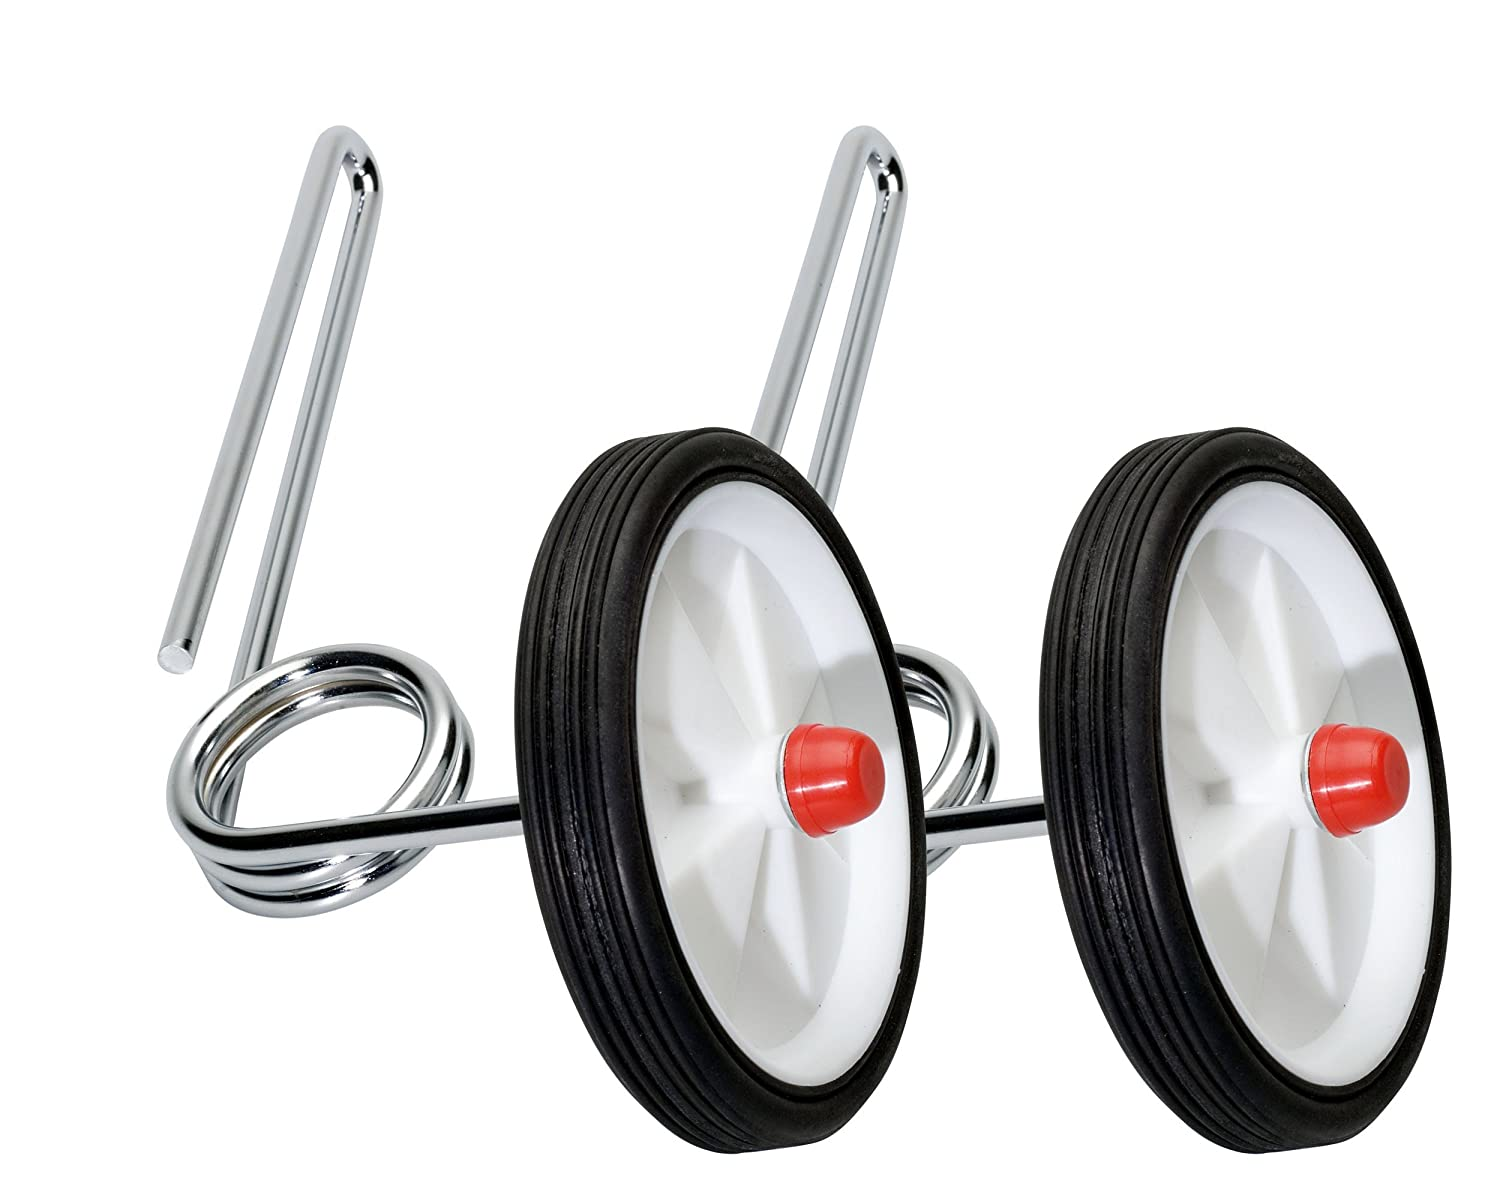 Bell Spotter 300 Ez Trainer Training Wheels Bicycle